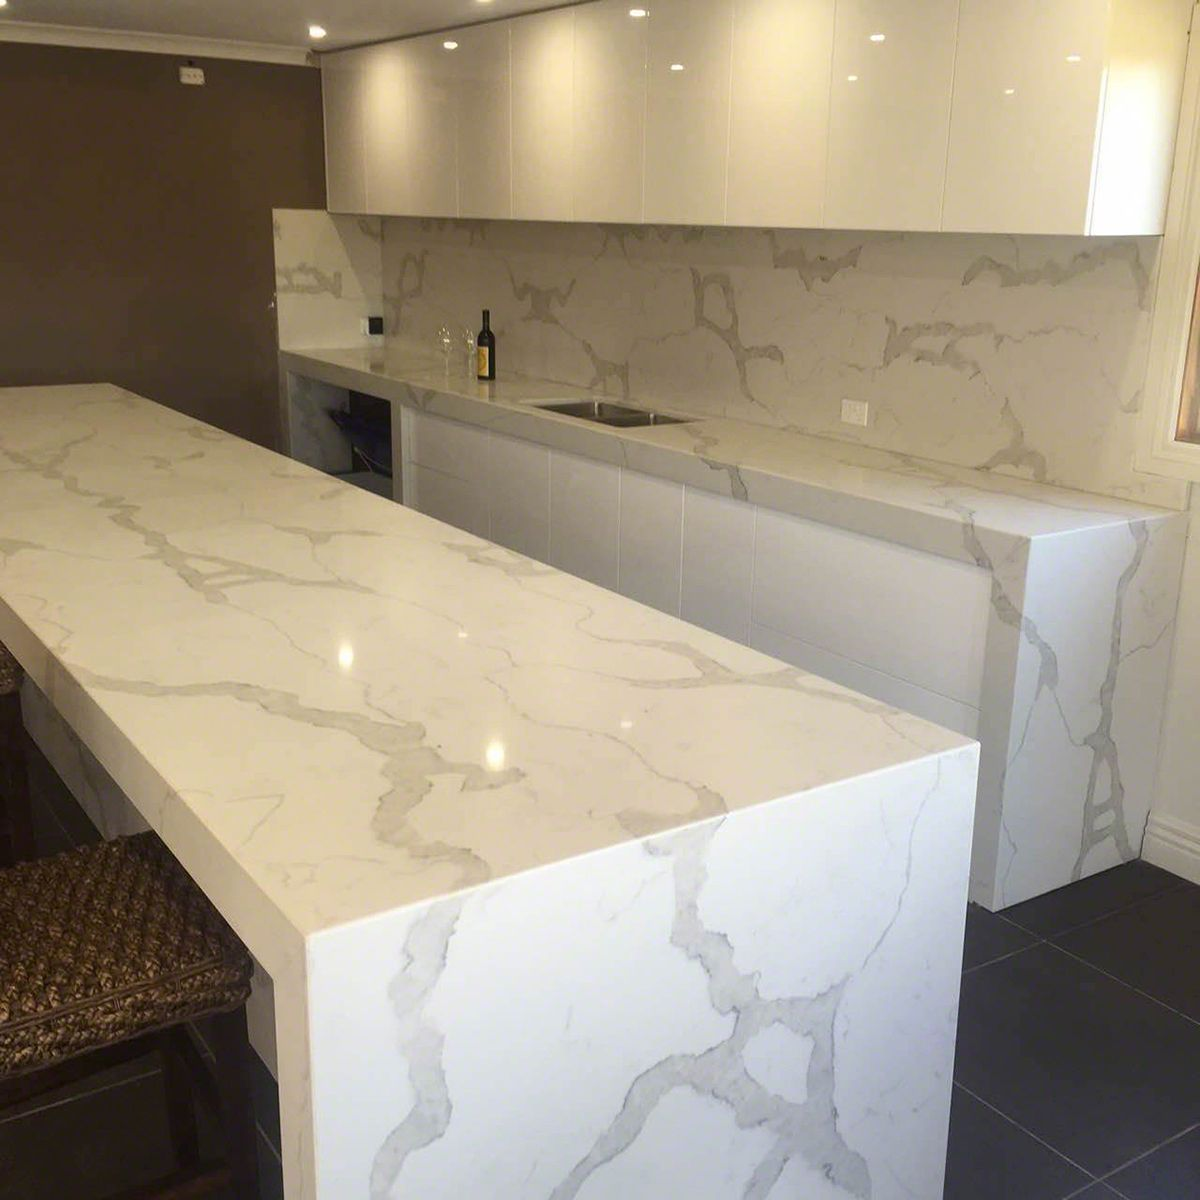 place countertops it but just came thoughtful suggest alike the like s that tile vs replacement not i or does they would marble porcelain look a quartz